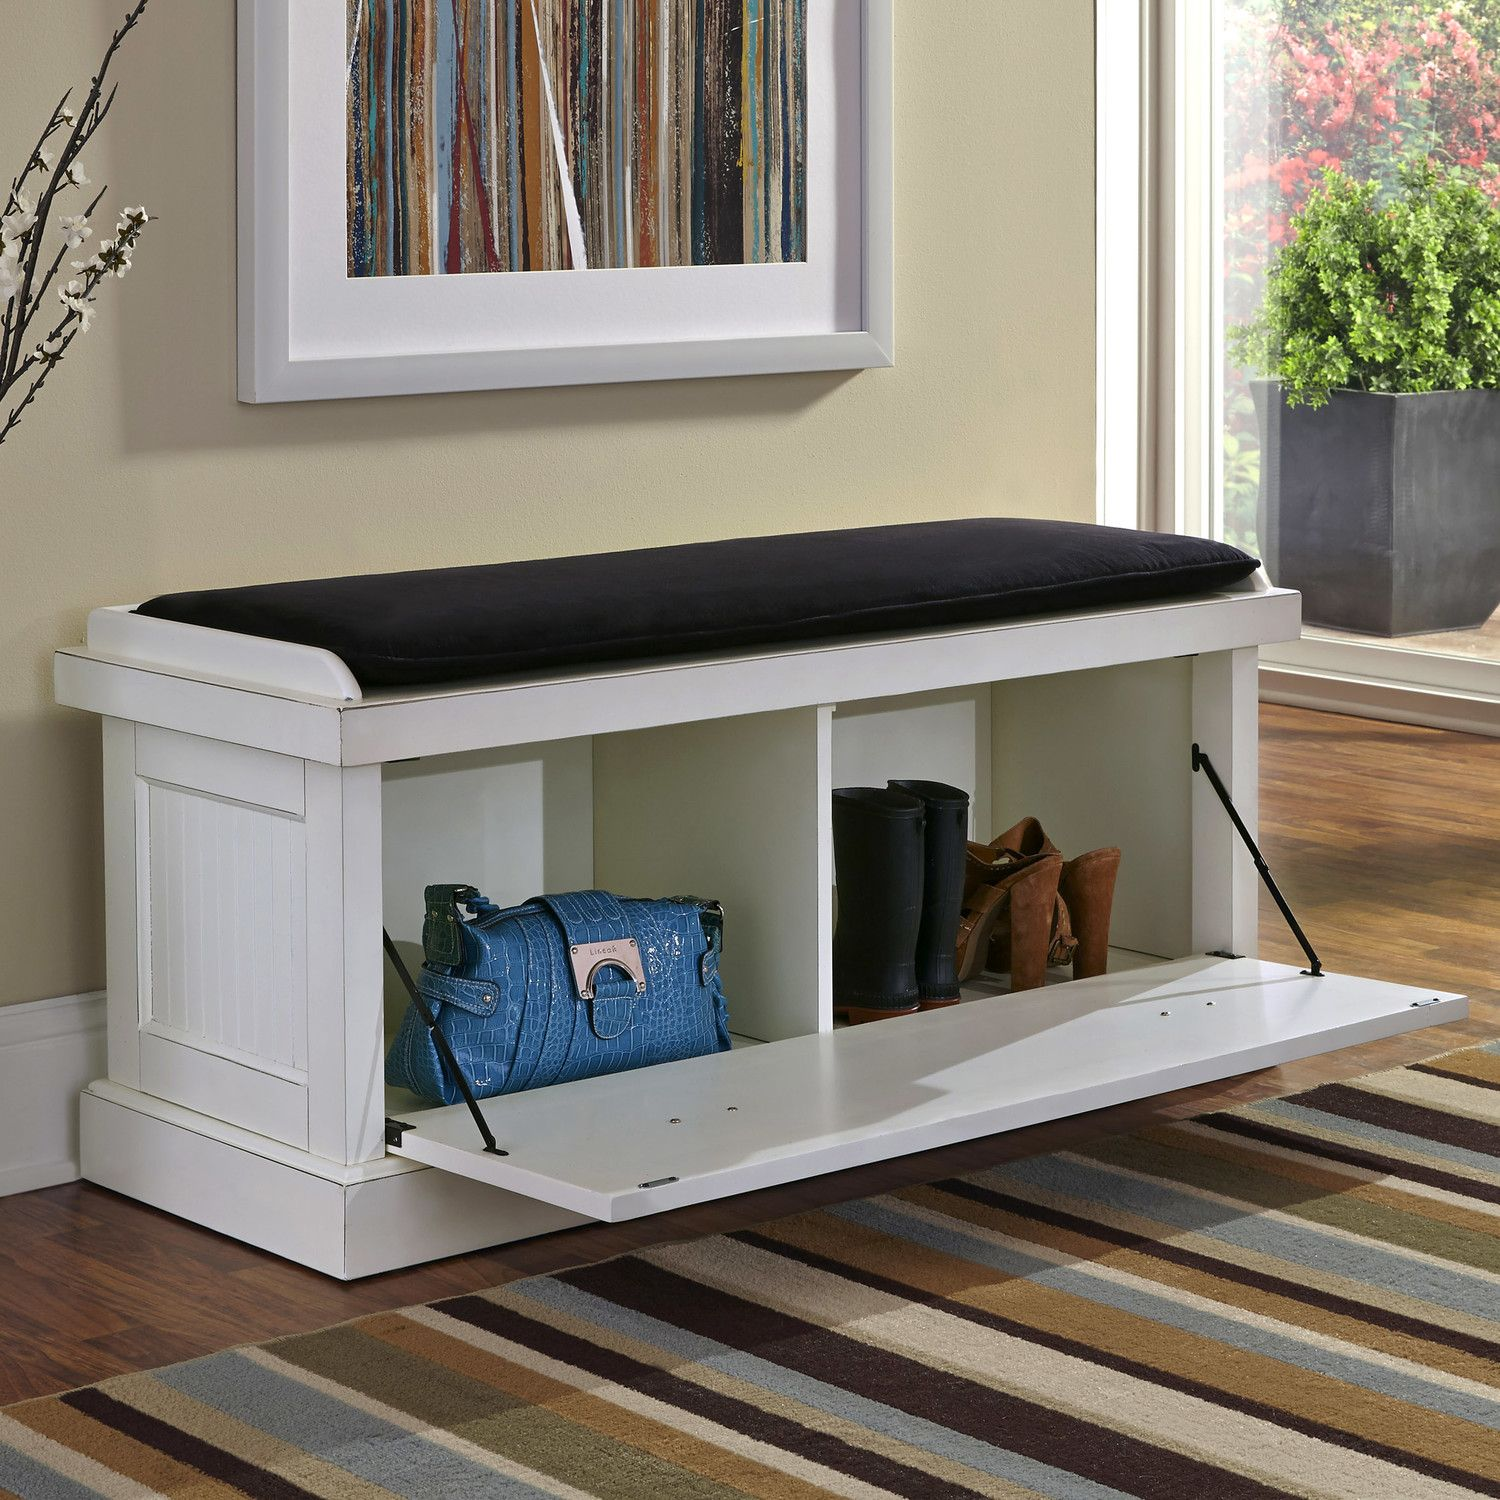 Home Styles Nantucket Upholstered Entryway Bench Benches